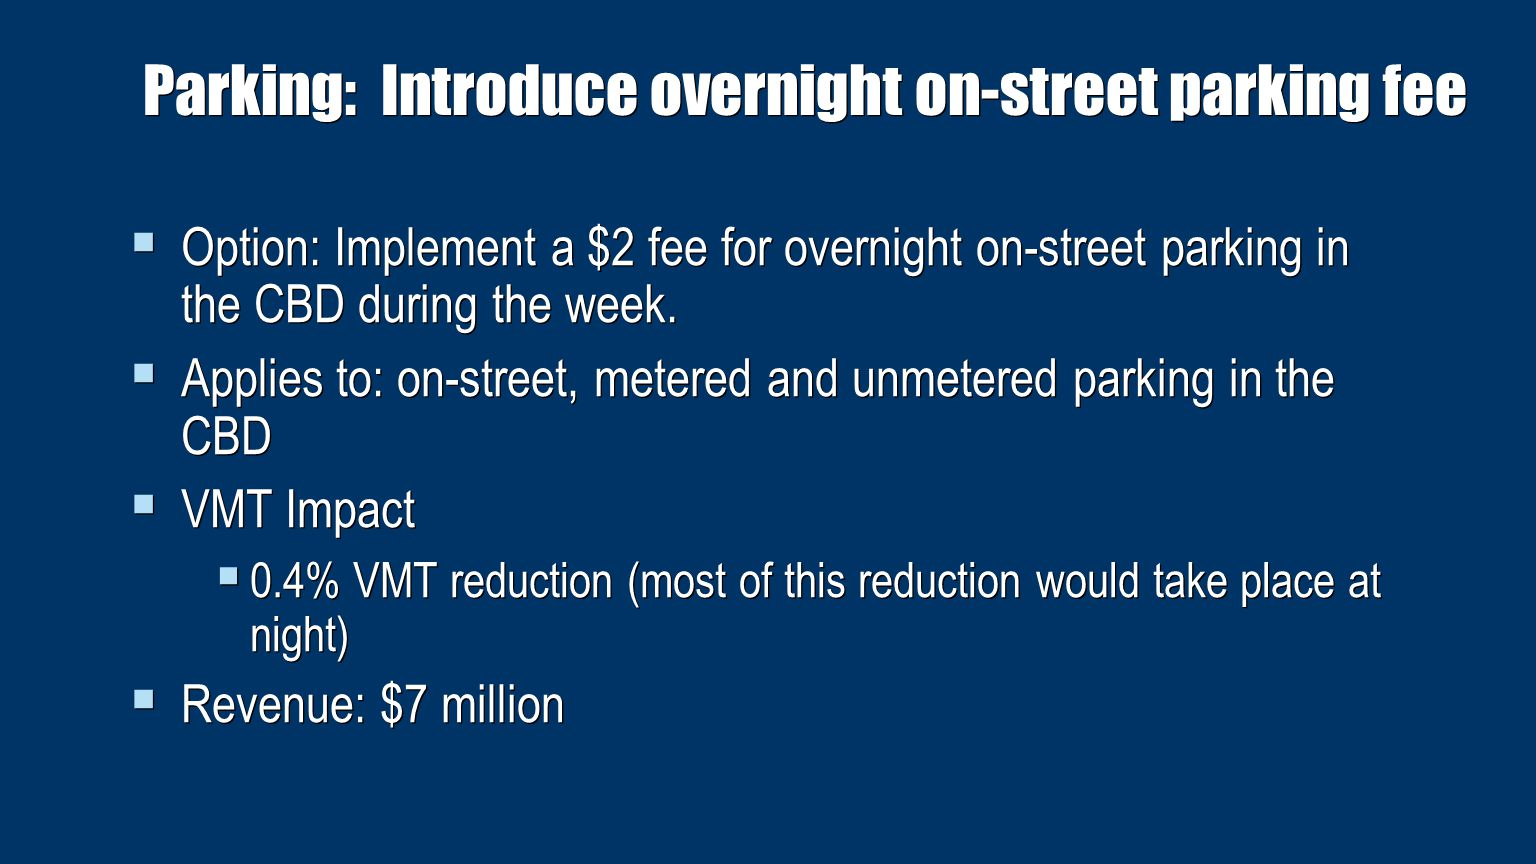 Parking: Reduce use of parking placards by public employees  Option: Remove free on-street parking for government employees currently commuting to Manhattan jobs  Applies to: on-street parking for government employees with placards  VMT Impact  0.10% VMT reduction for 3,000 placards  0.17% VMT reduction for 5,000 placards  0.33% VMT reduction for 10,000 placards  Revenue: $0